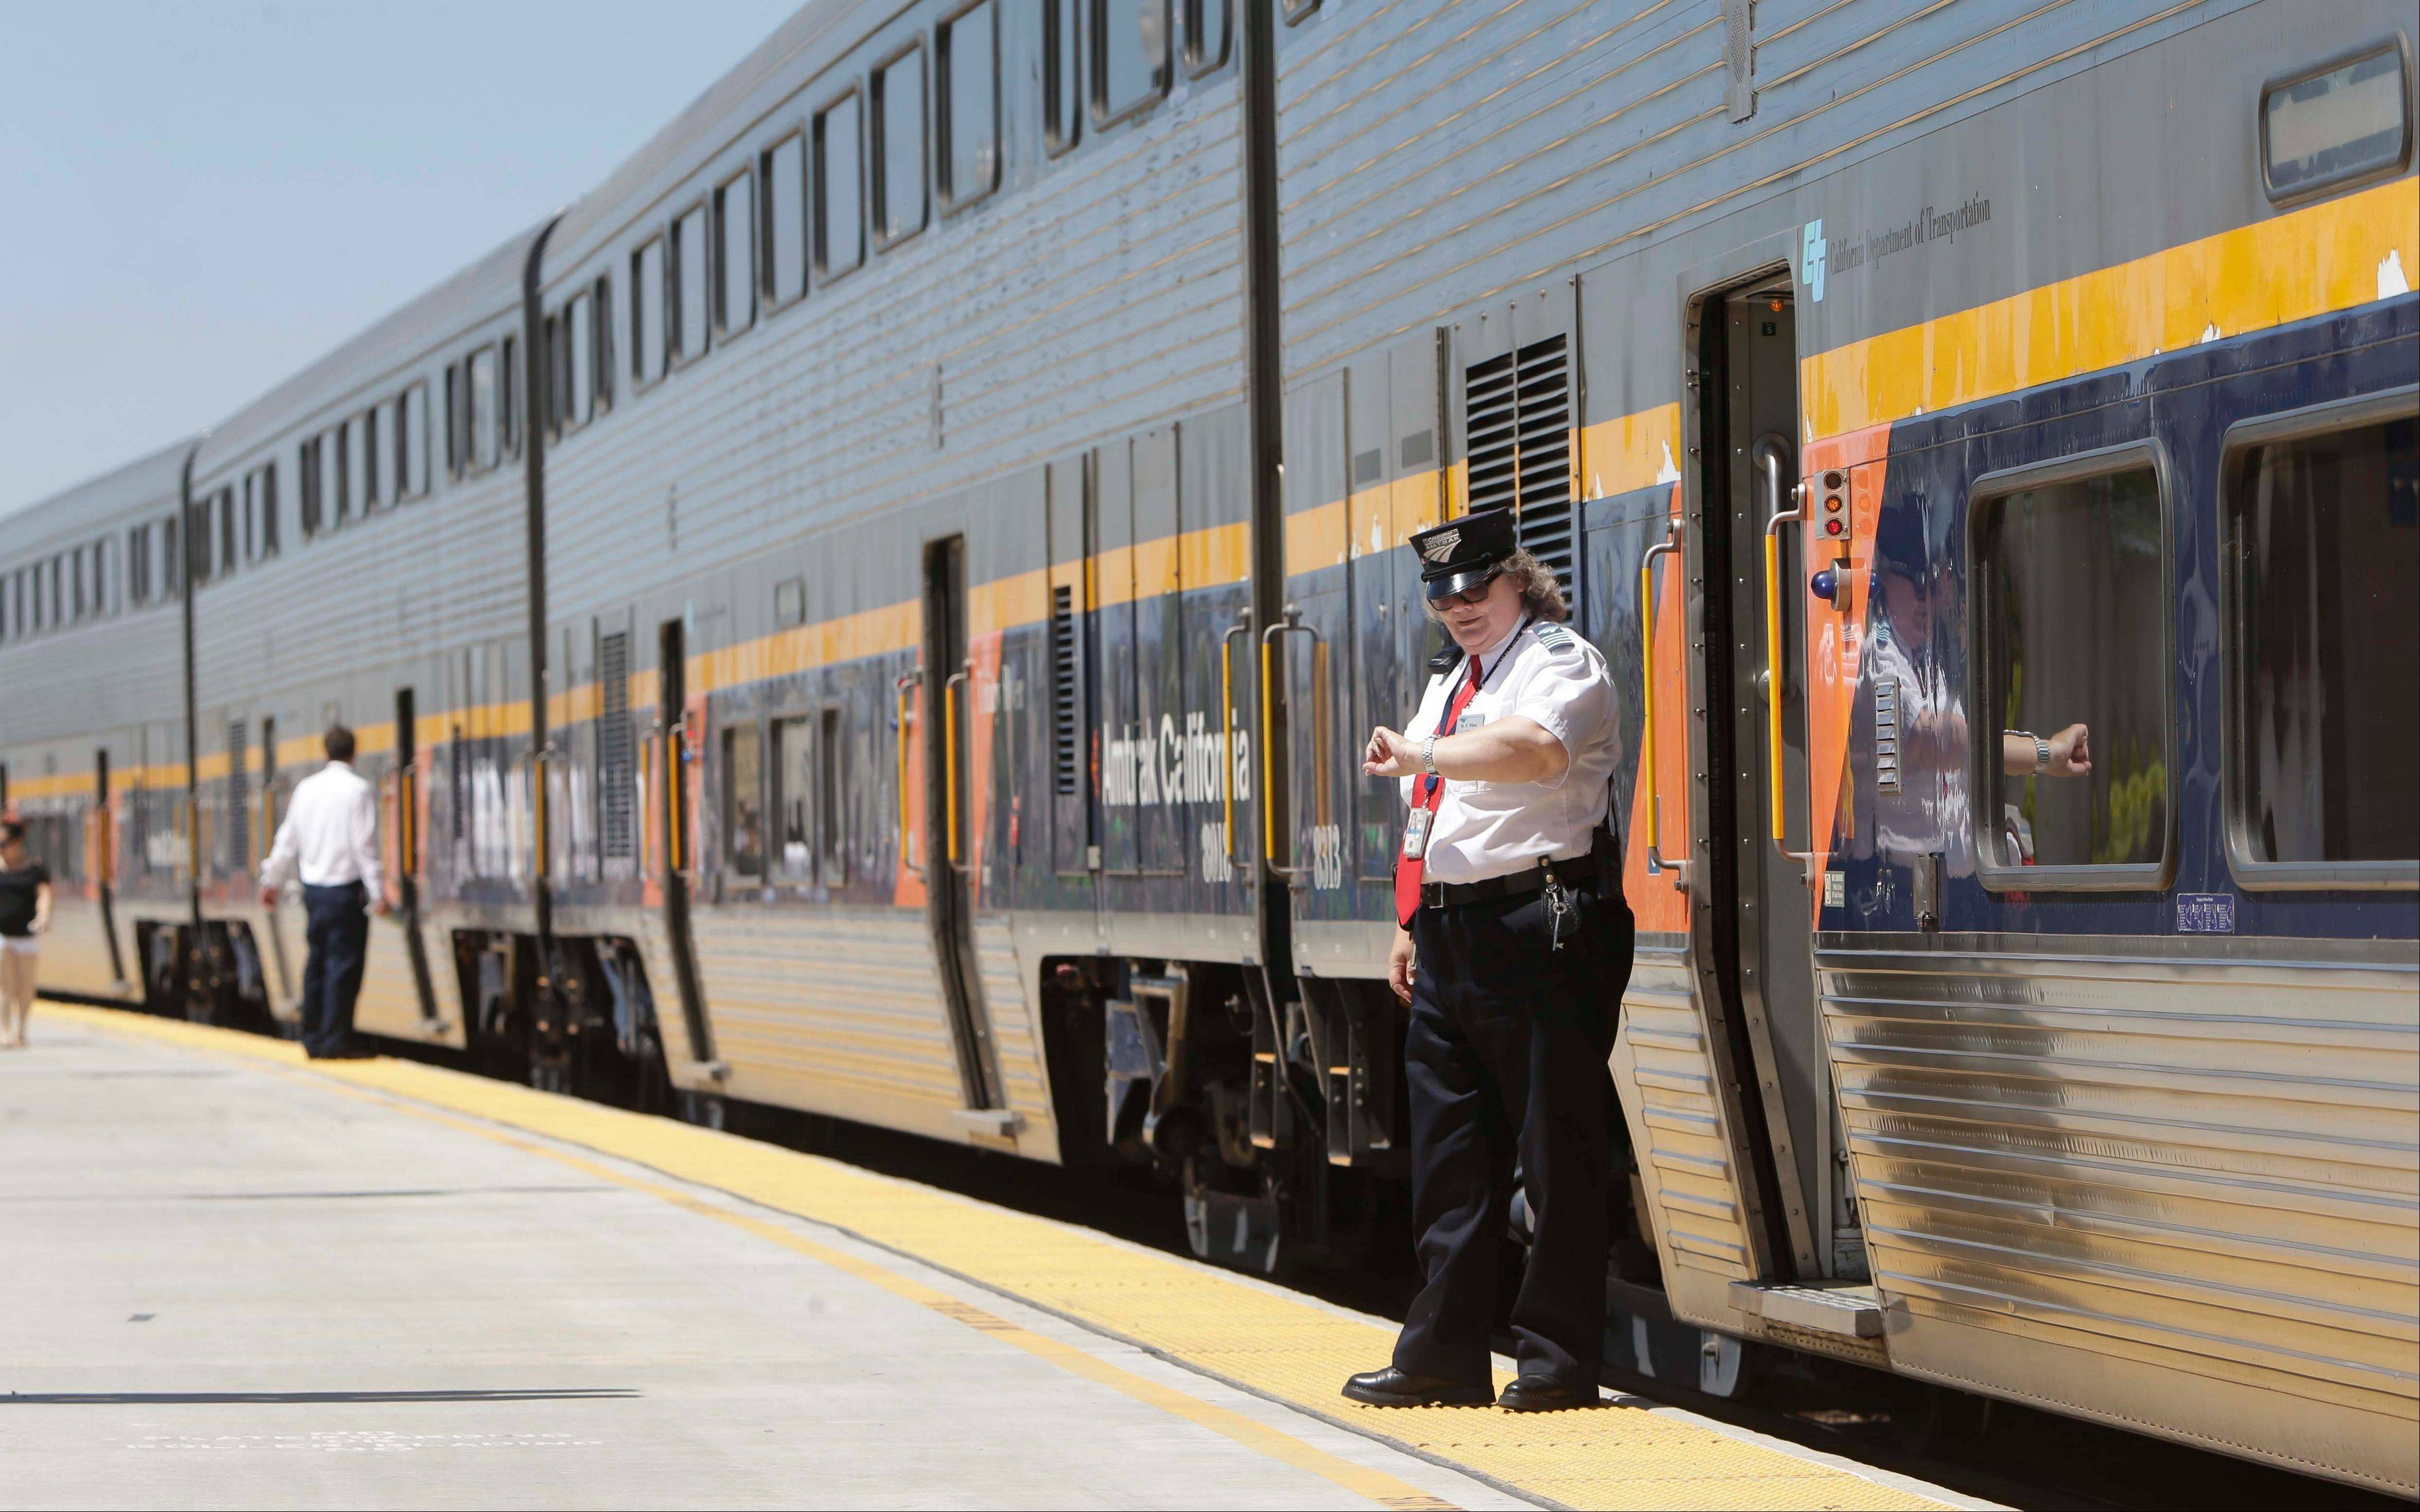 An Amtrak conductor checks the time as the passenger train takes on passengers in Hanford, Calif. The state�s plan to build the first high-speed rail system in the nation is intended to alleviate gridlock, connect the Central Valley to better jobs and ease pollution, but many residents oppose the $68 billion project.